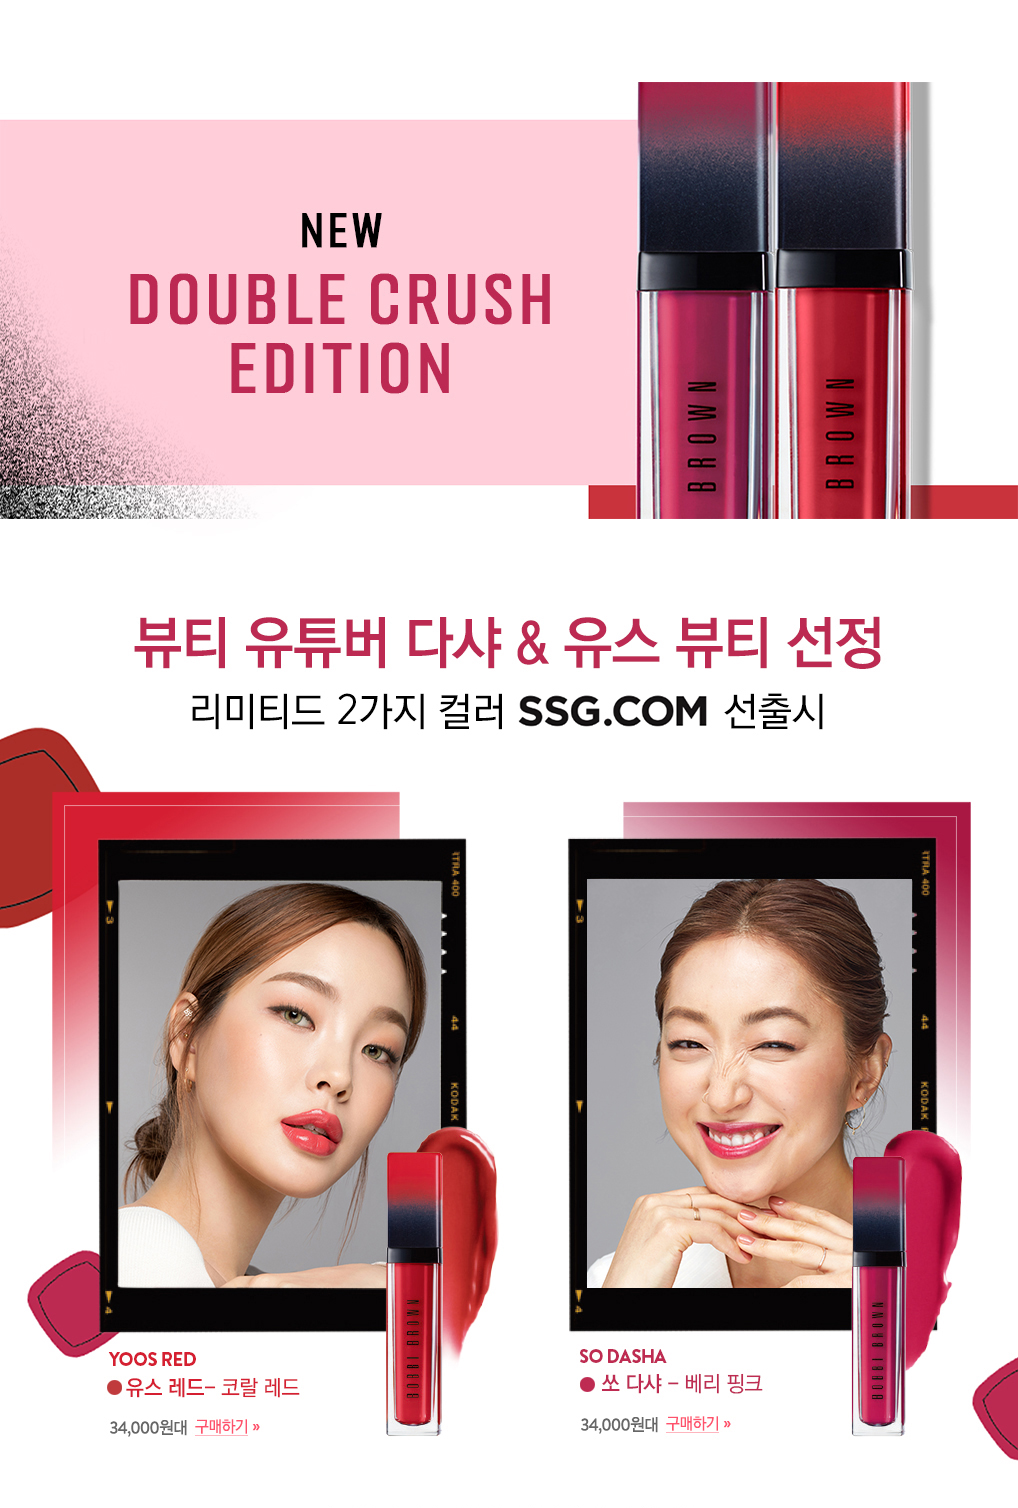 NEW DOUBLE CRUSH EDITION